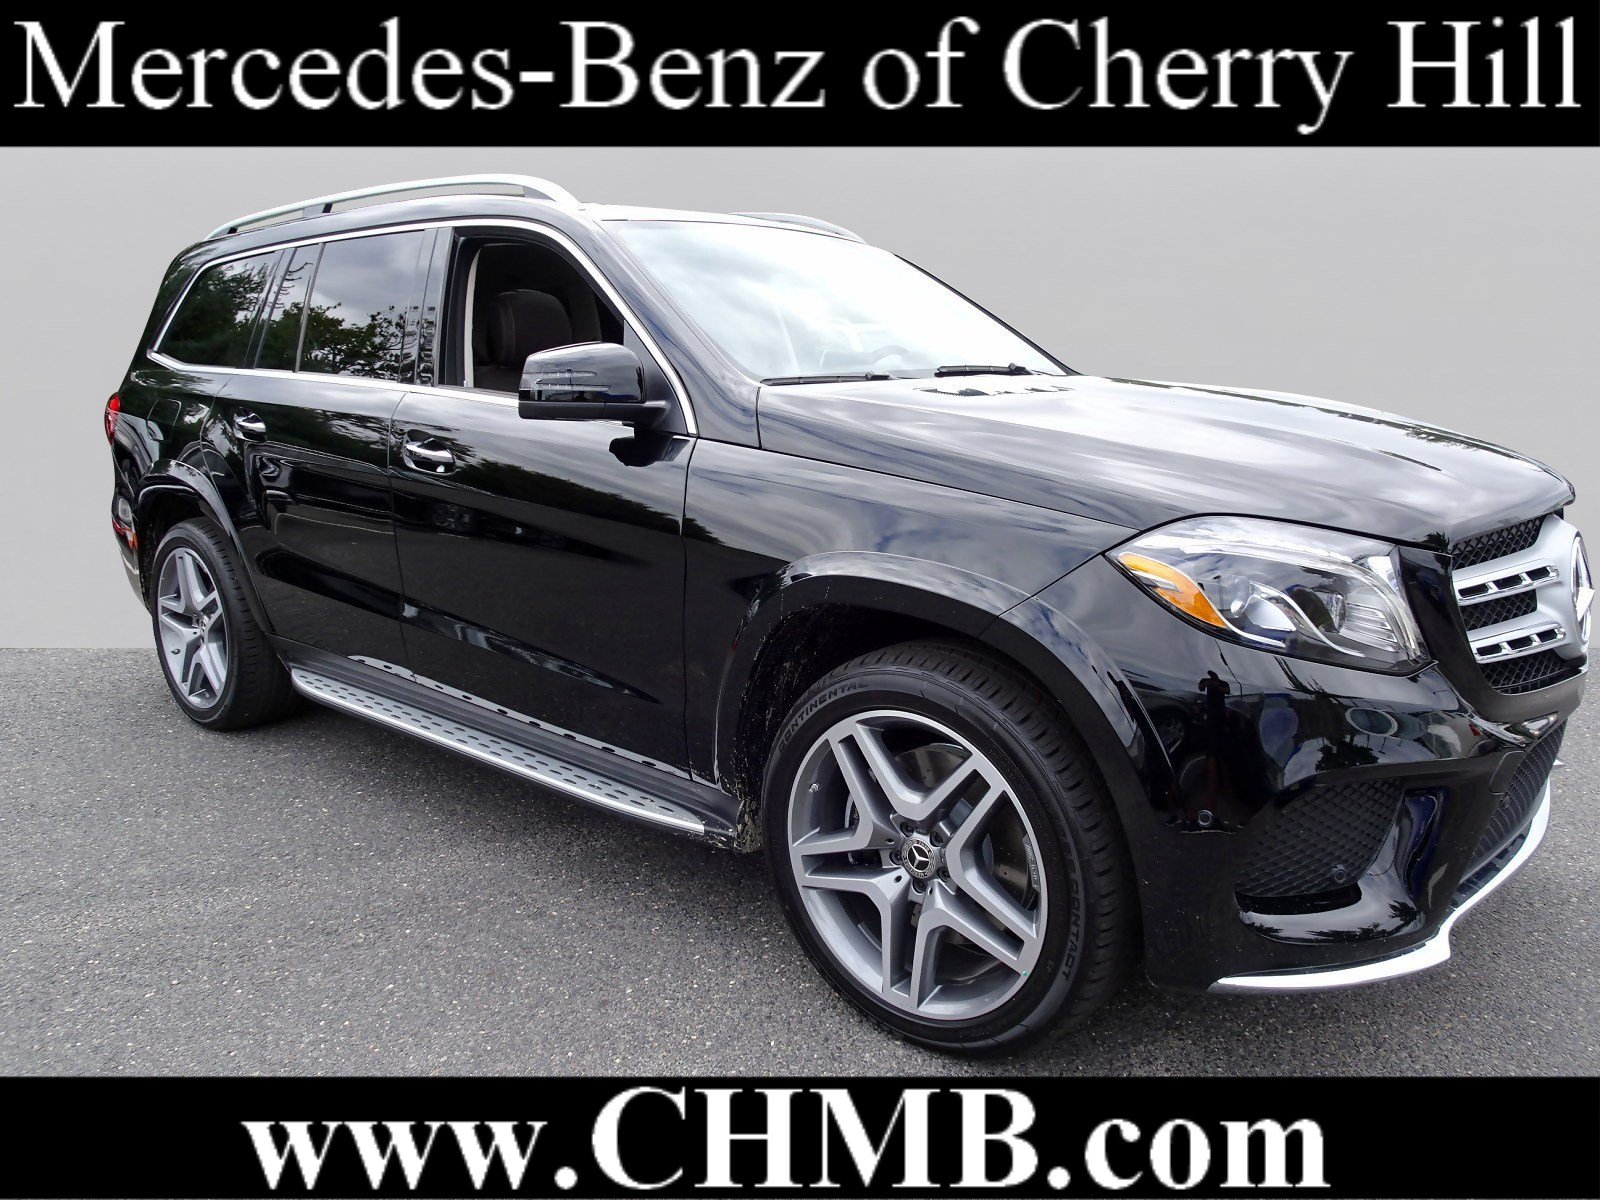 New 2019 Mercedes Benz GLS GLS 550 SUV in Cherry Hill M2304